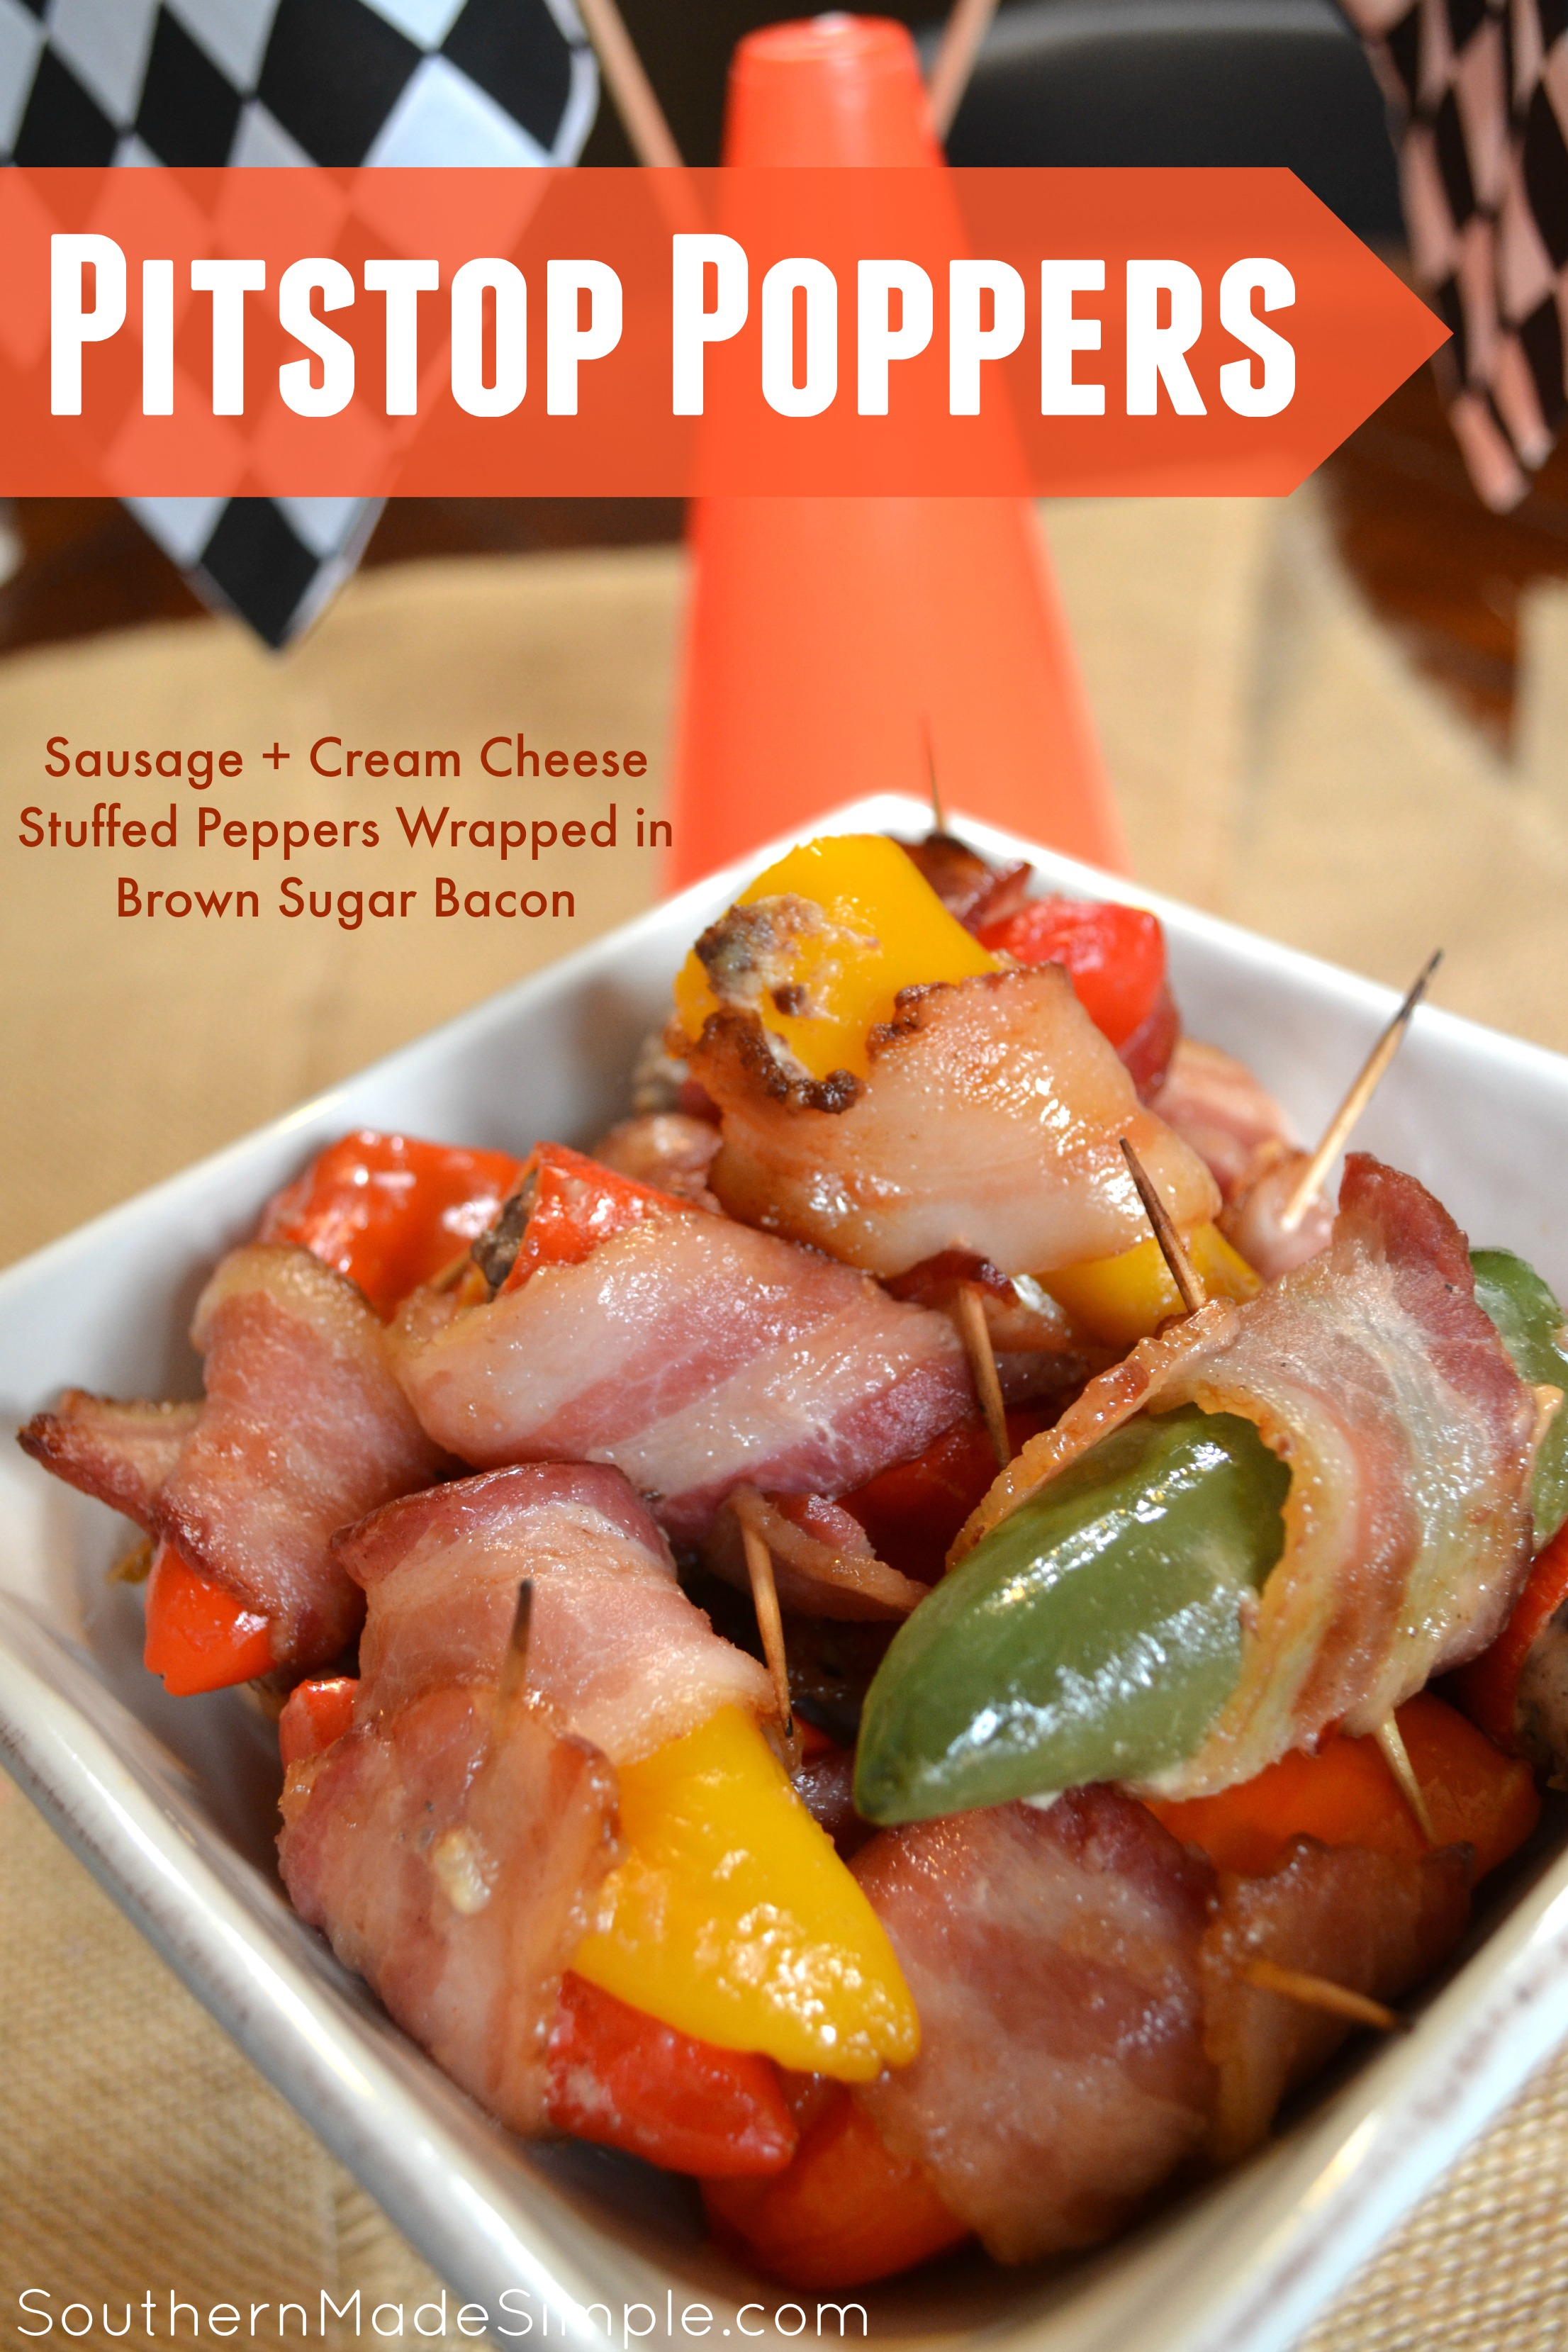 {PIitstop Pepper Poppers} Rev up your engines with Nexium and kick up the heat on race day with these delicious Pitstop Poppers! These jalapenos and sweet peppers are stuffed with a sausage and cream cheese mixture and beautifully wrapped in bacon coated with brown sugar. Mmmm! #RaceDayRelief #AD